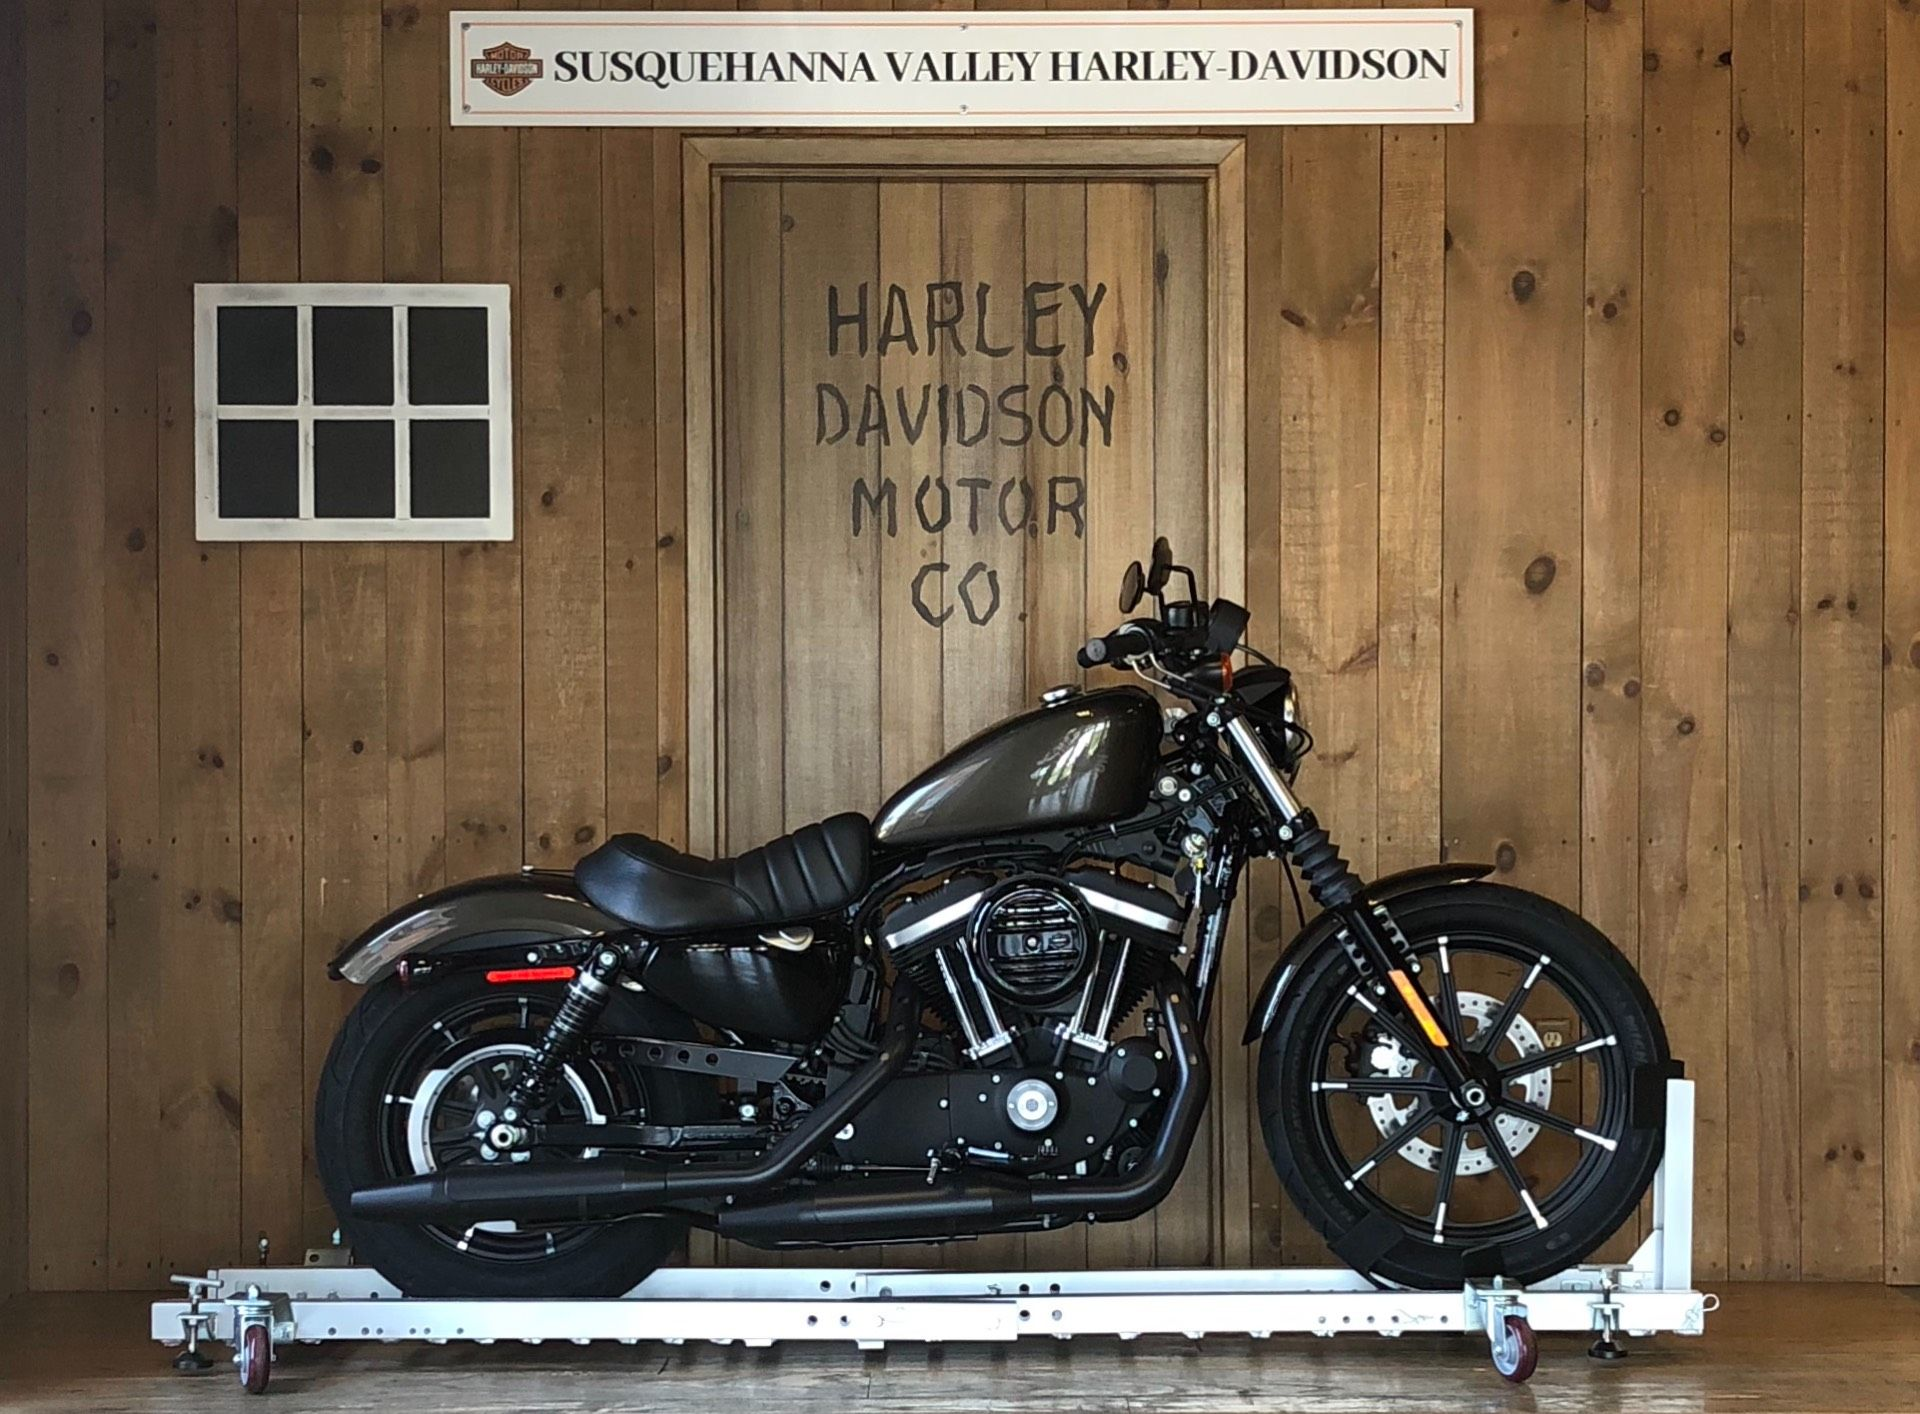 2020 Harley-Davidson Sportster Iron 883 in Harrisburg, Pennsylvania - Photo 1